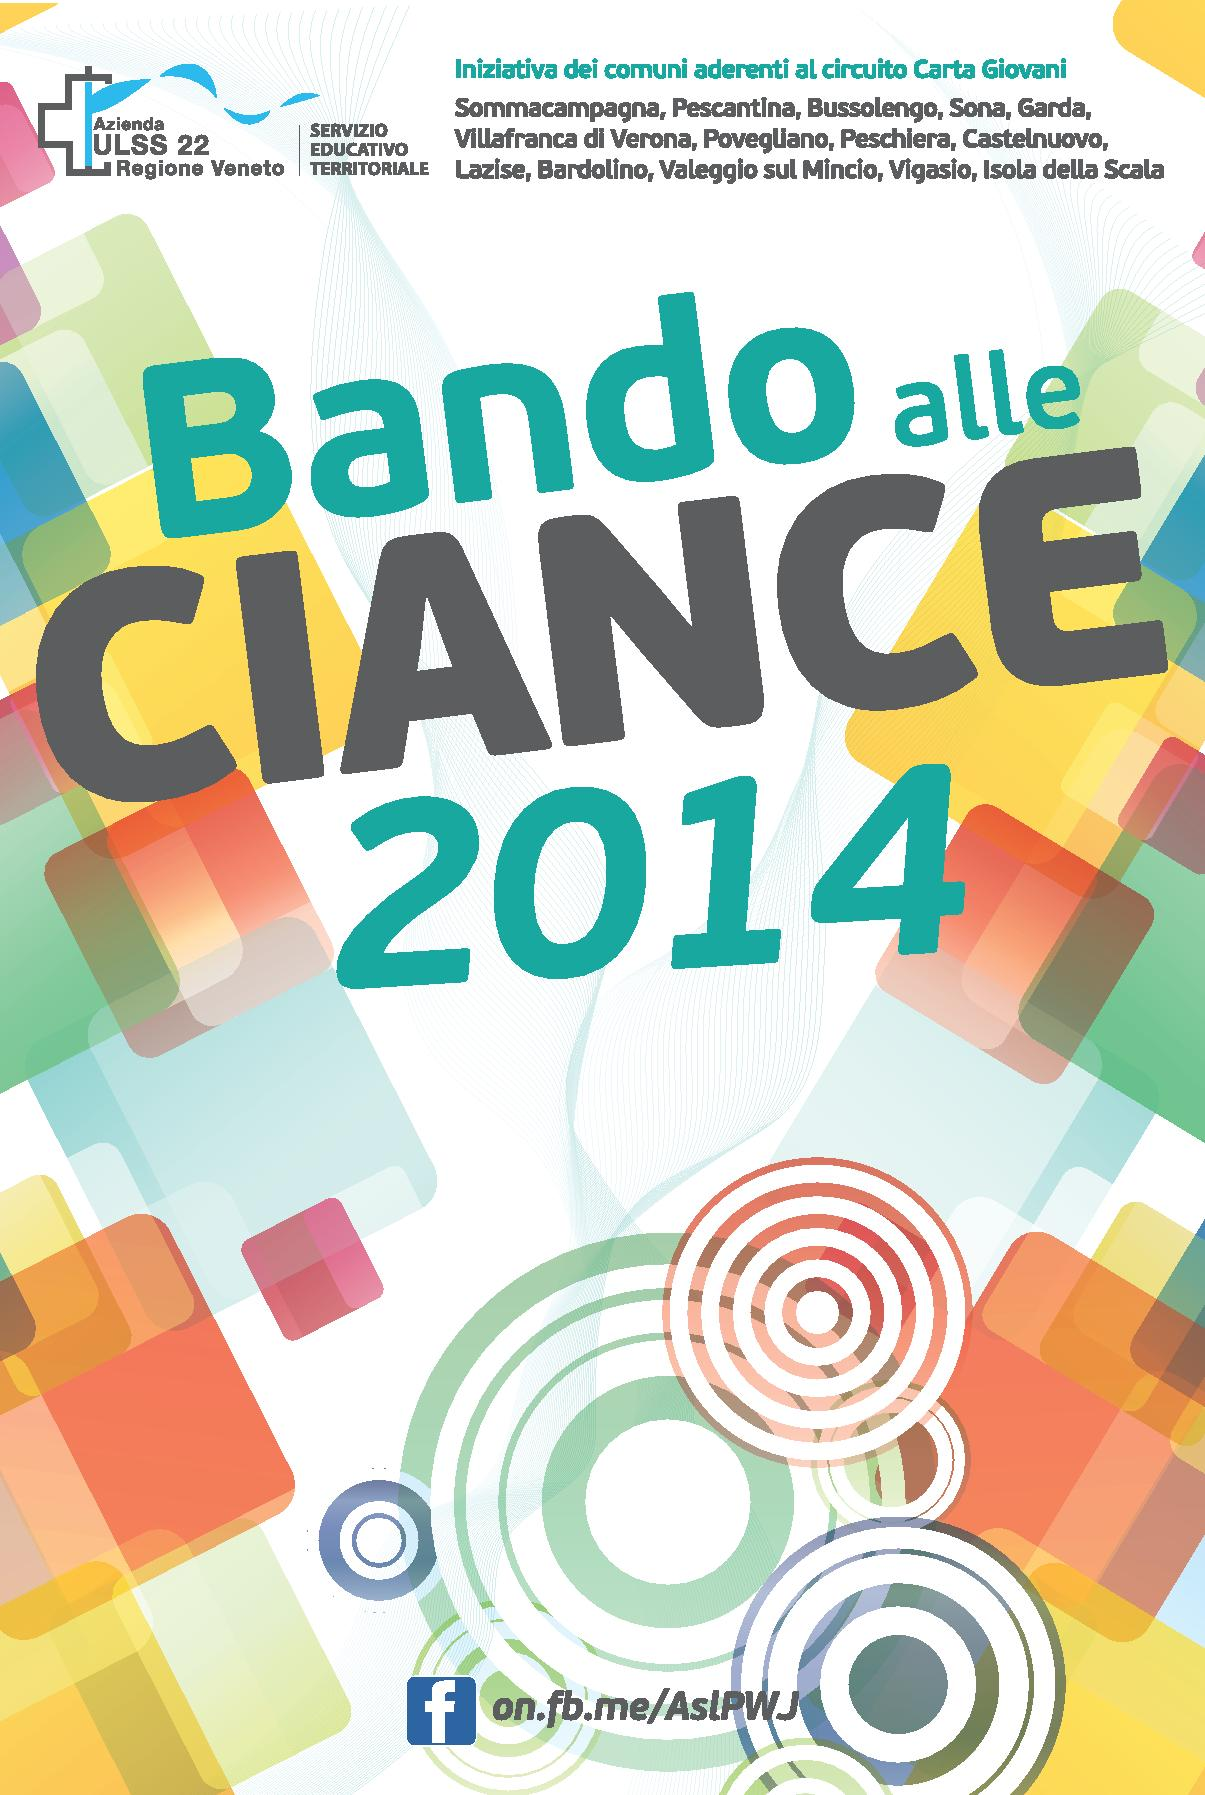 Flyer 10x15cm Bando alle Ciance 2014 STAMPA Pixart Printing.pdf-page-001 1